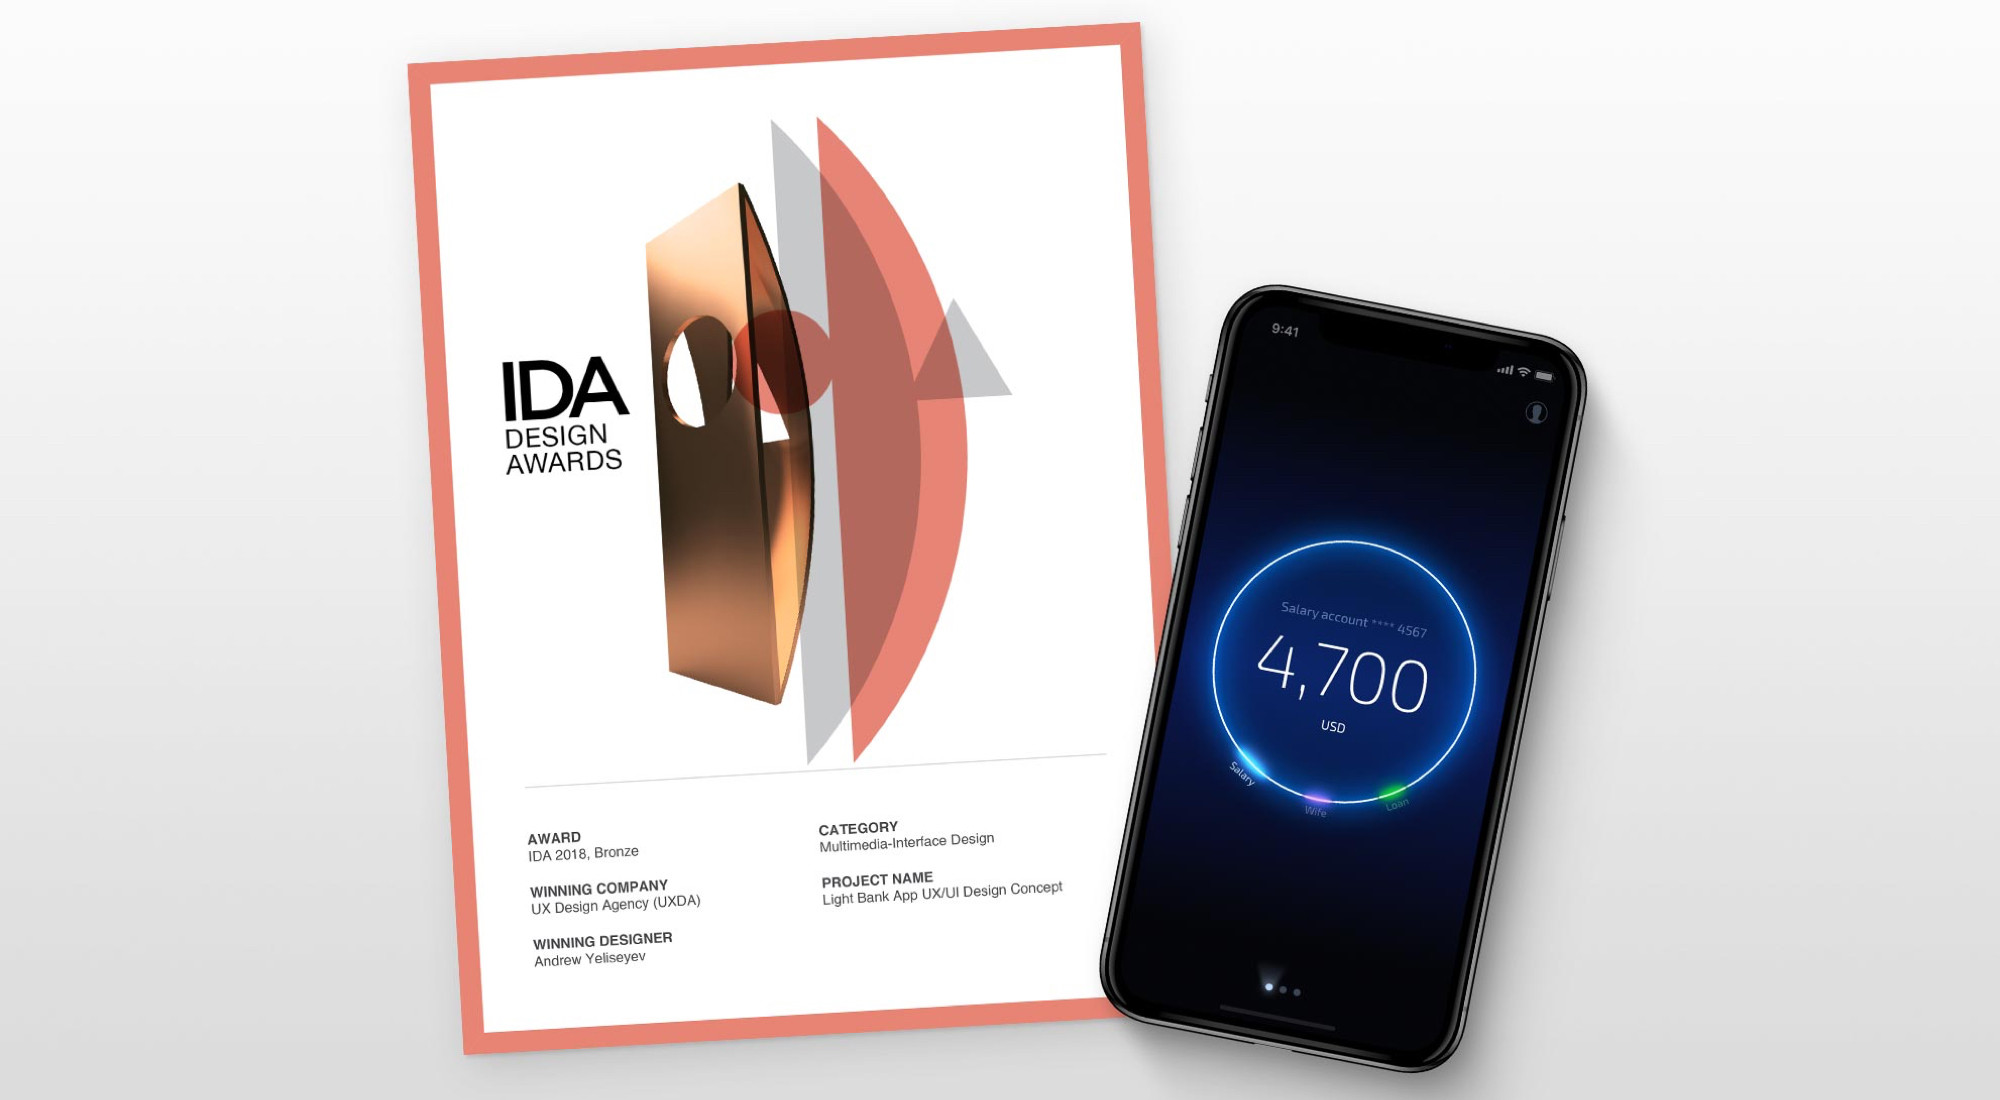 Financial UX Design Agency Receives the International Design Award